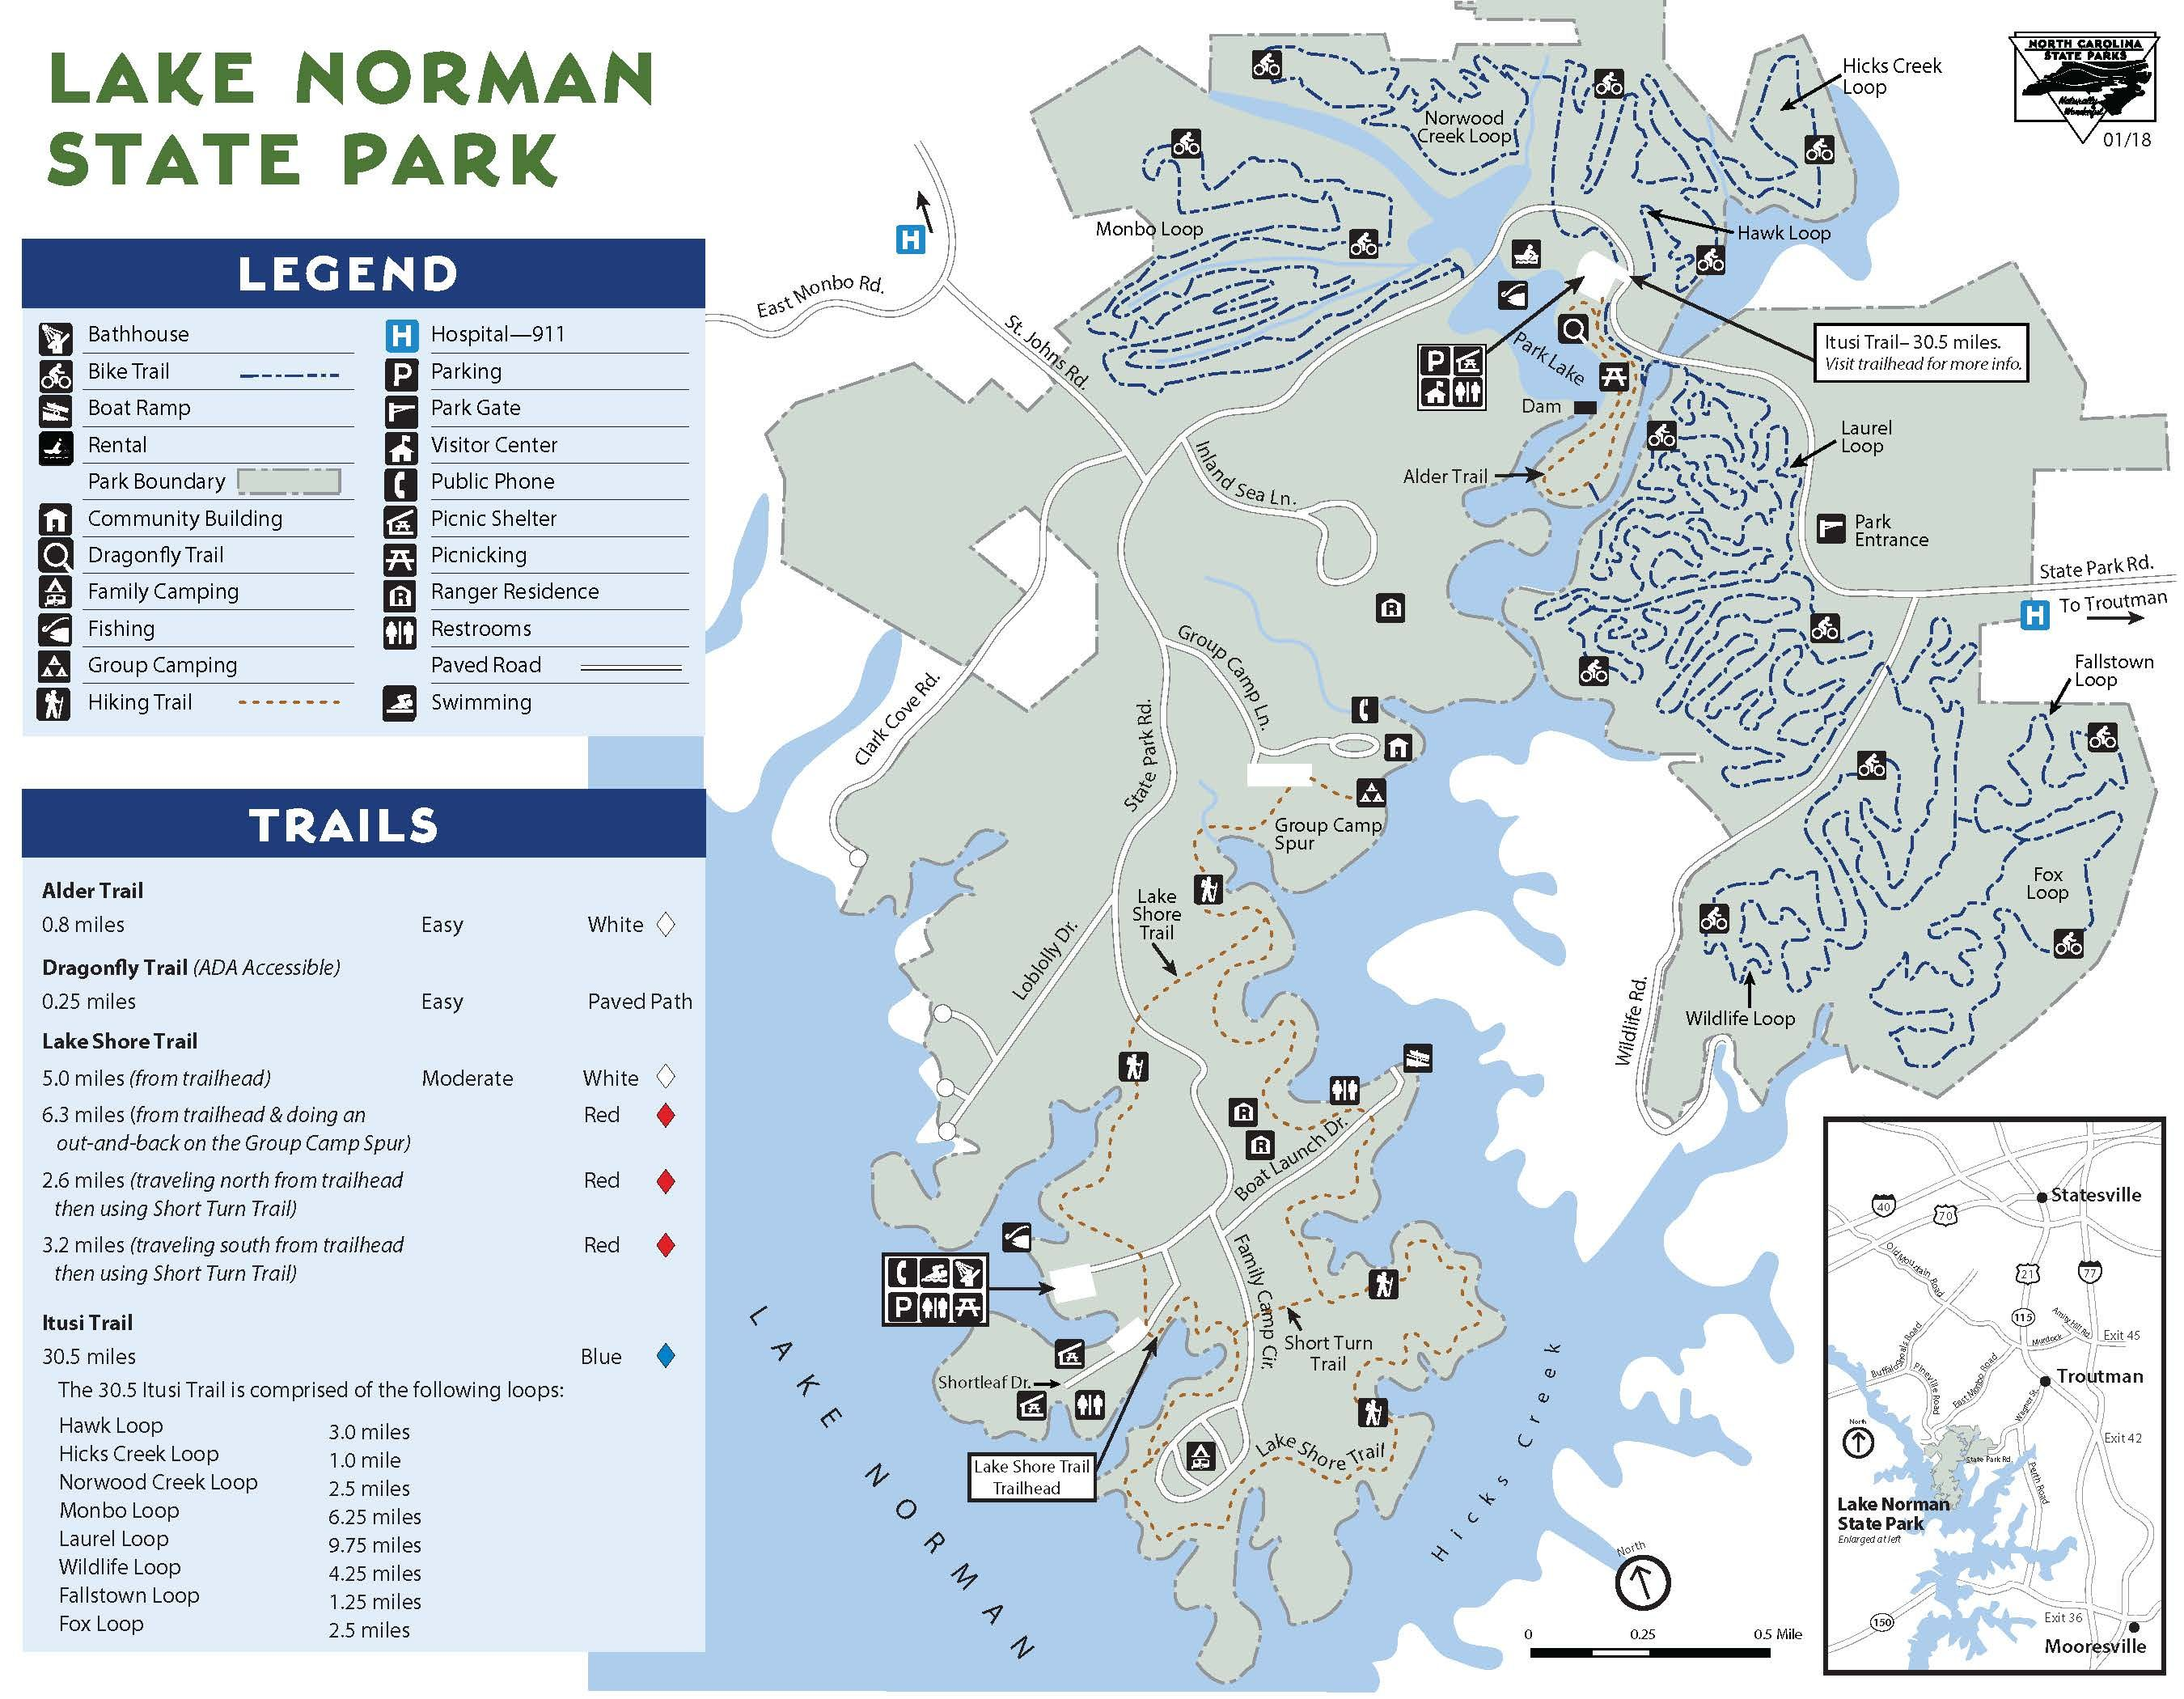 lake norman fishing map Lake Norman State Park Summer Travel Fun State Parks Lake lake norman fishing map